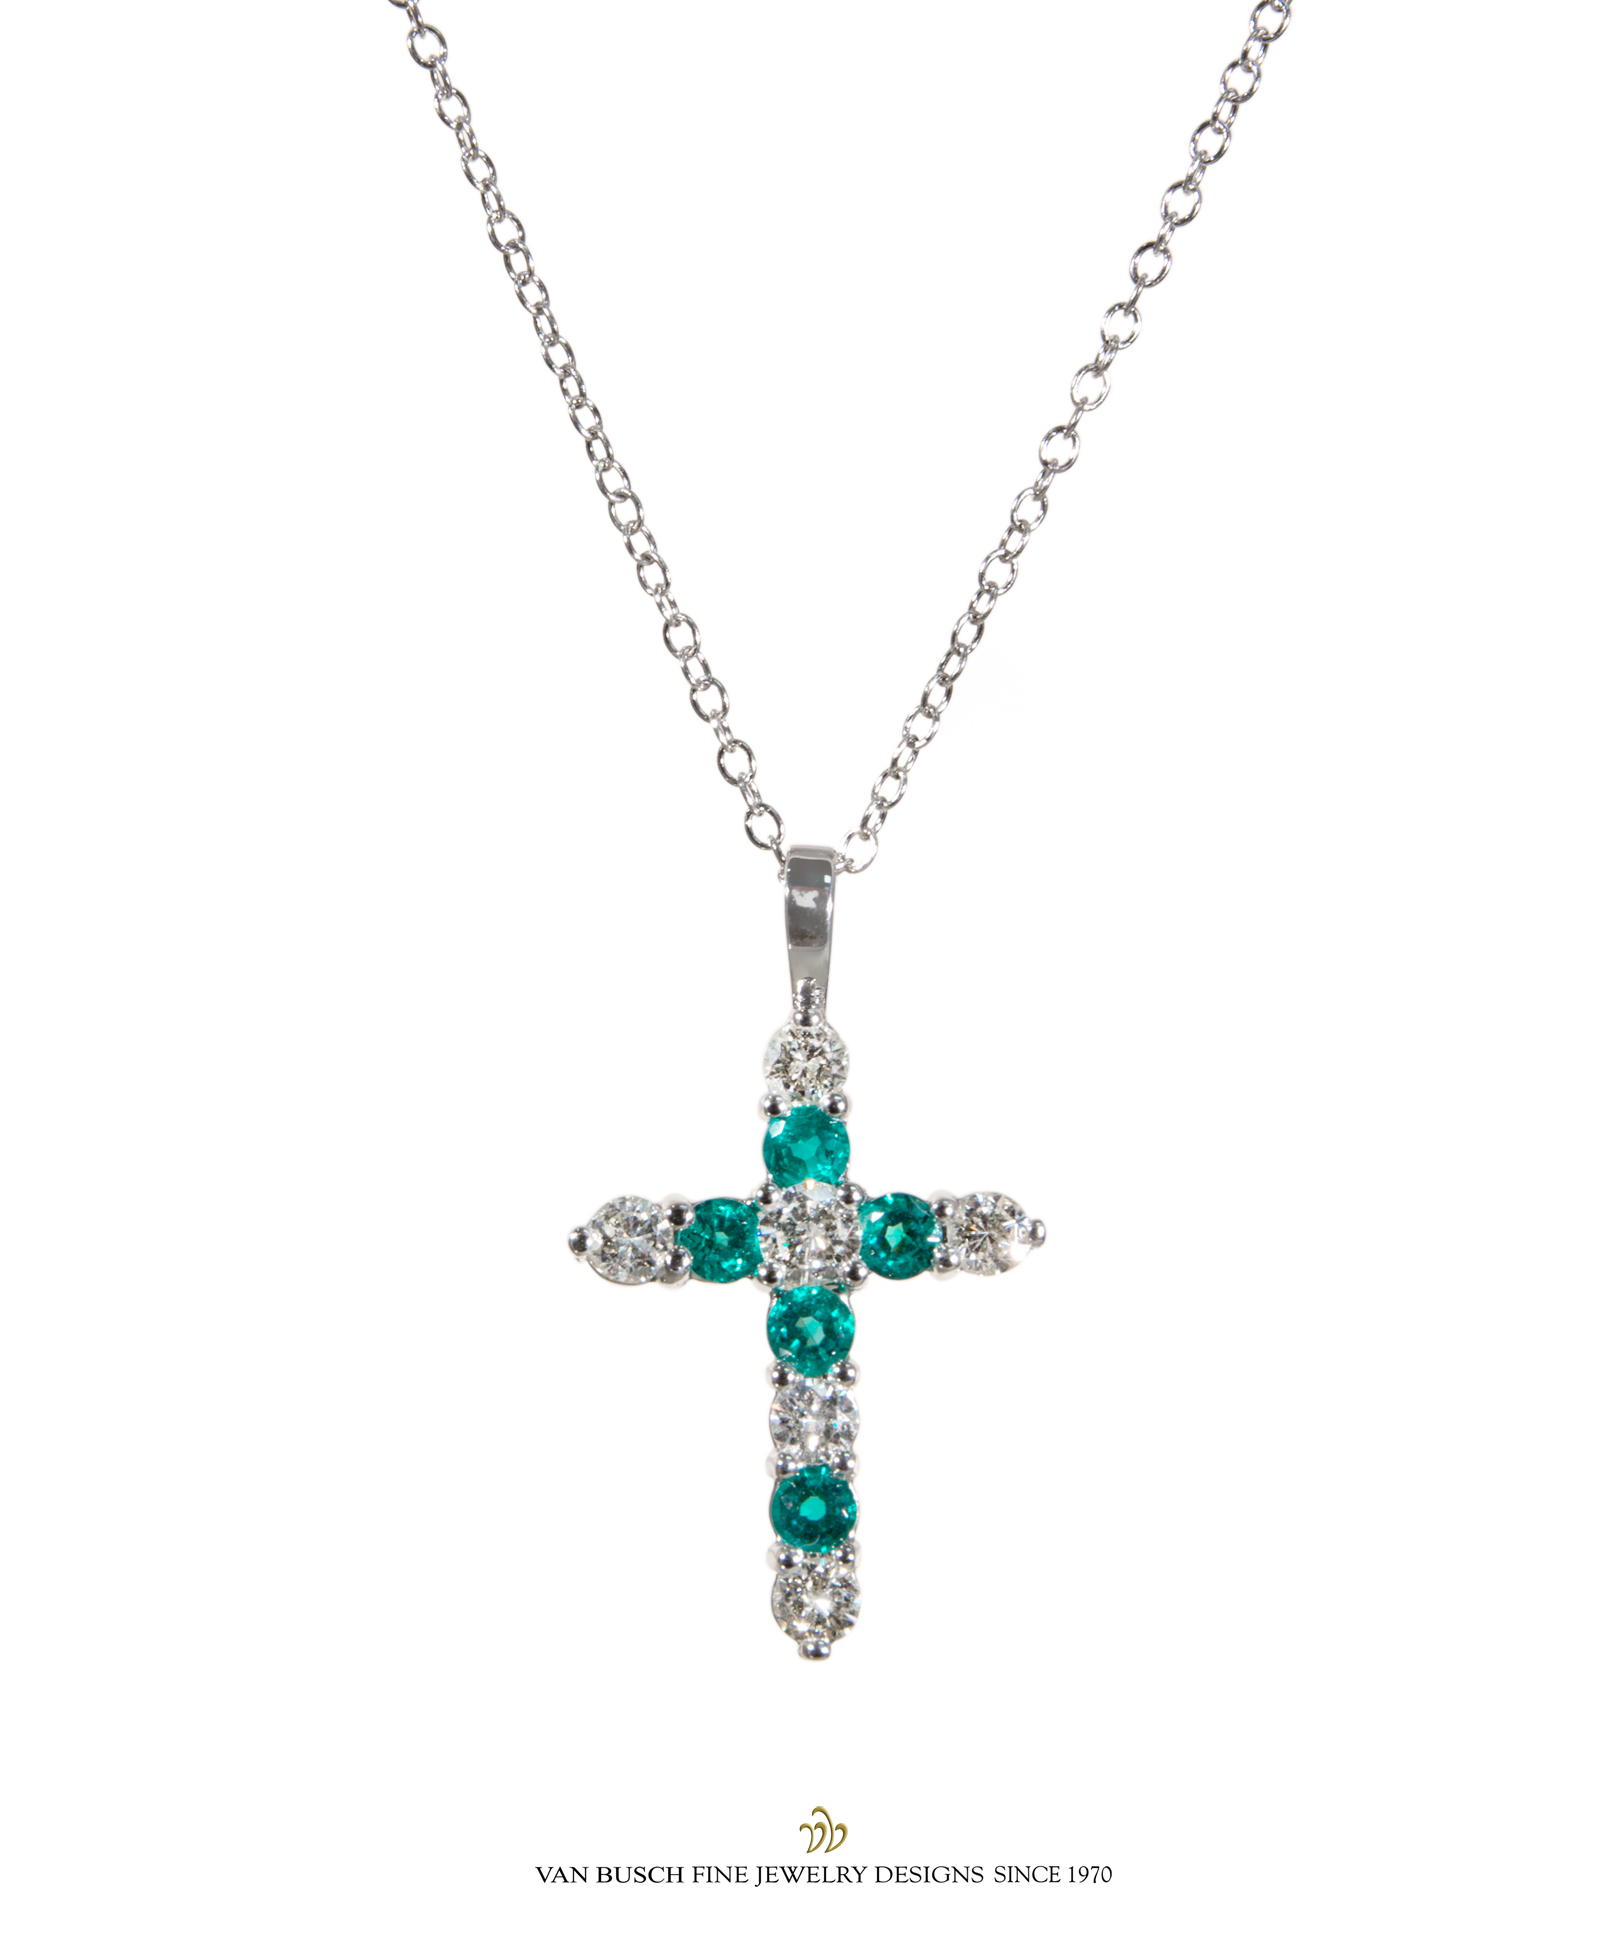 Emerald and diamond cross necklace in u christmas